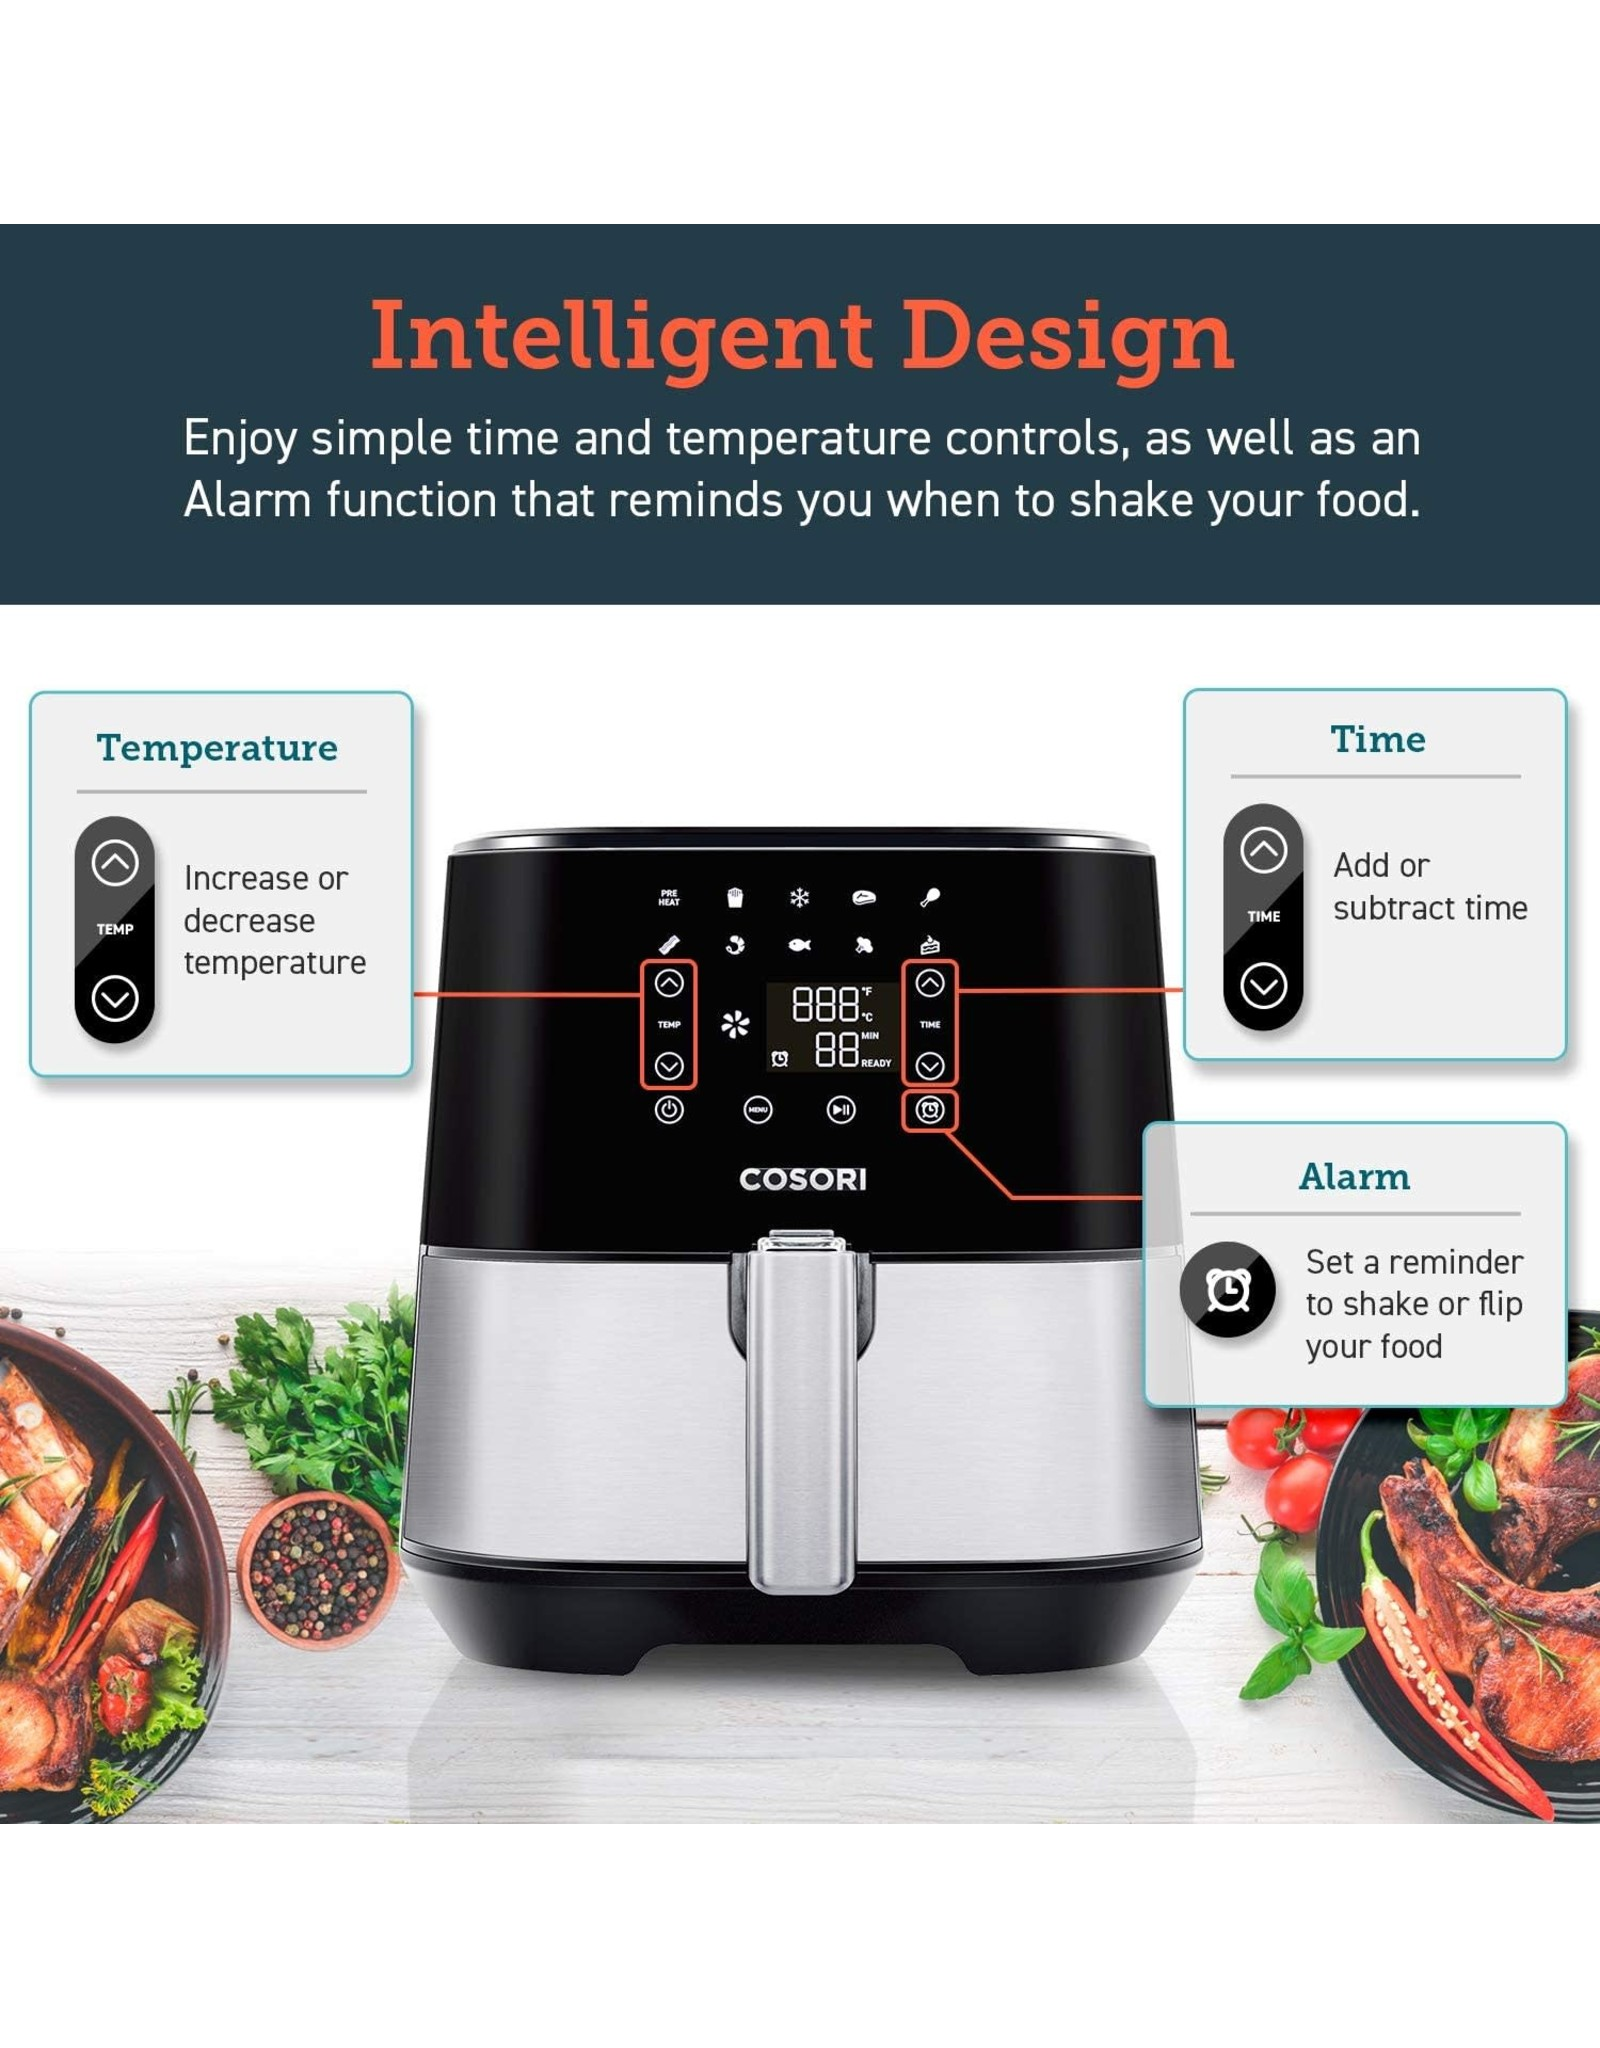 COSORI COSORI Air Fryer (100 Recipes, Rack & 5 Skewers,11 Functions) Large Oilless Oven Preheat/Alarm Reminder, 5.8QT, Digital-Stainless steel